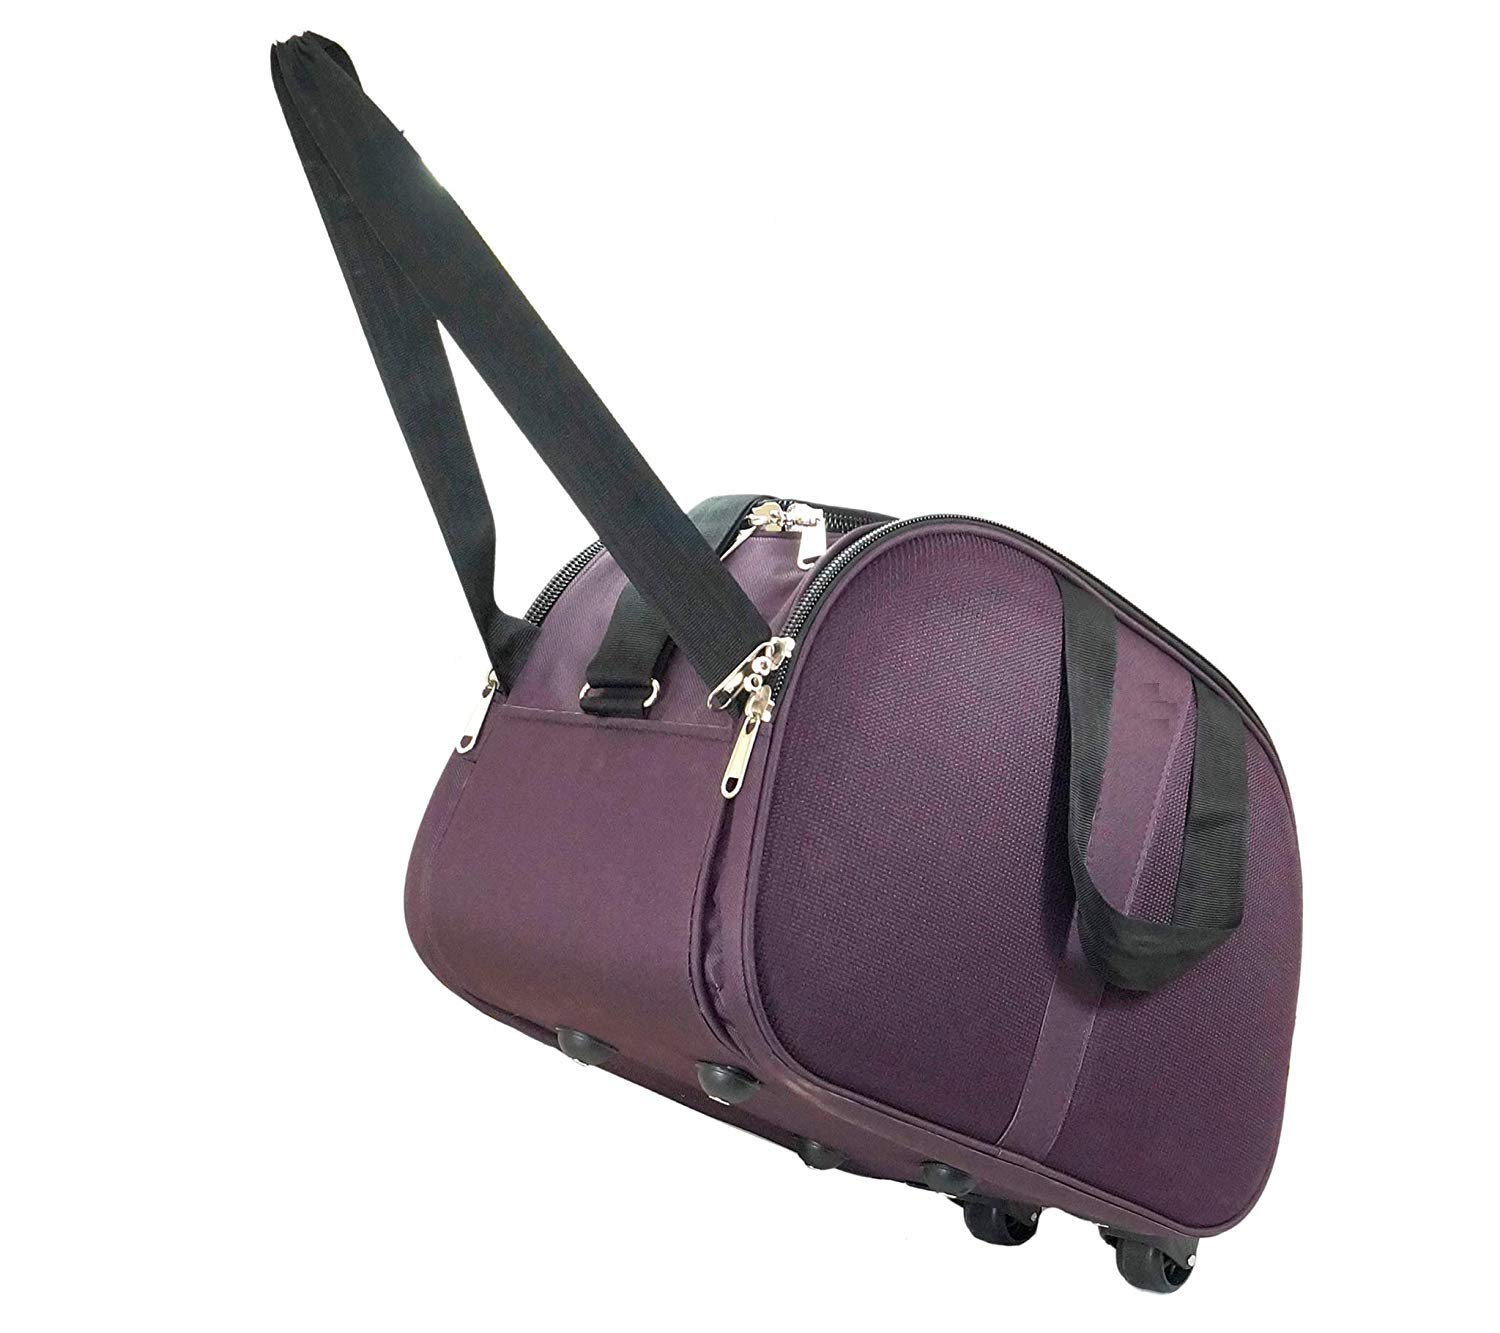 Karp Polyester-Fabric Purple Cabin Luggage Bag, Travel Duffle Trolley Bag with Wheels for Flight/Journey